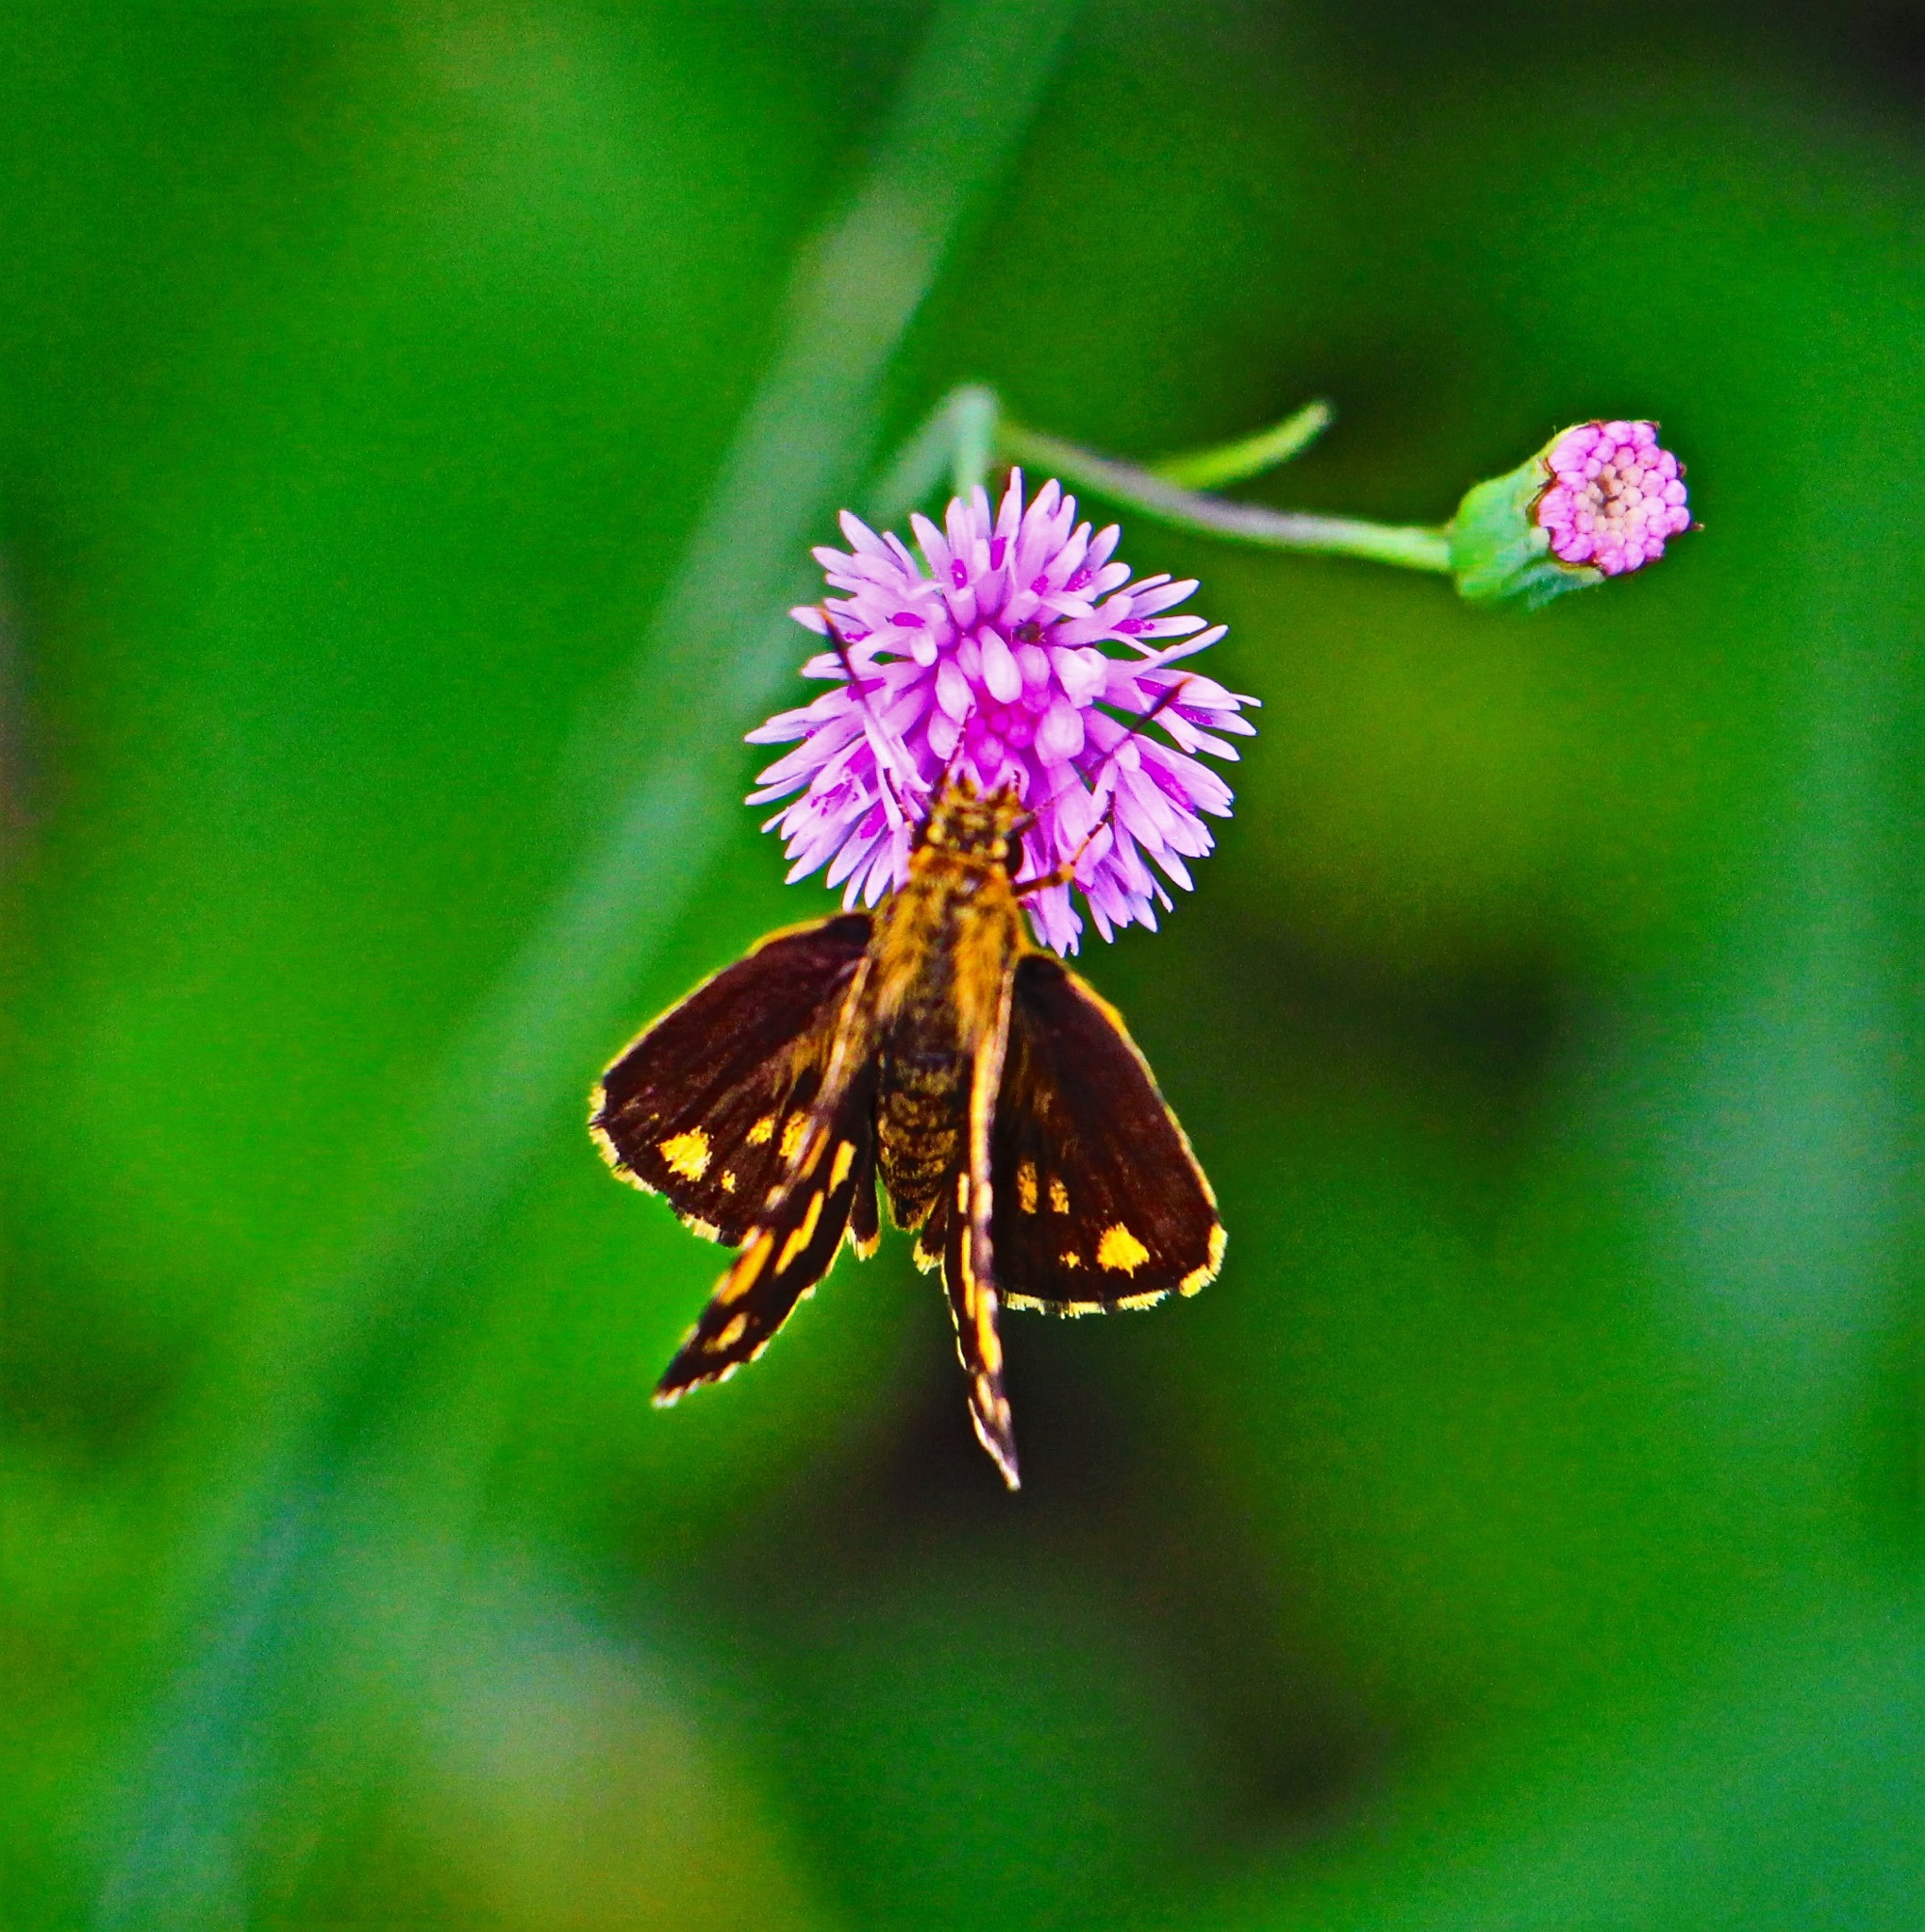 A moth Is On The Flower. by A.Samathasena